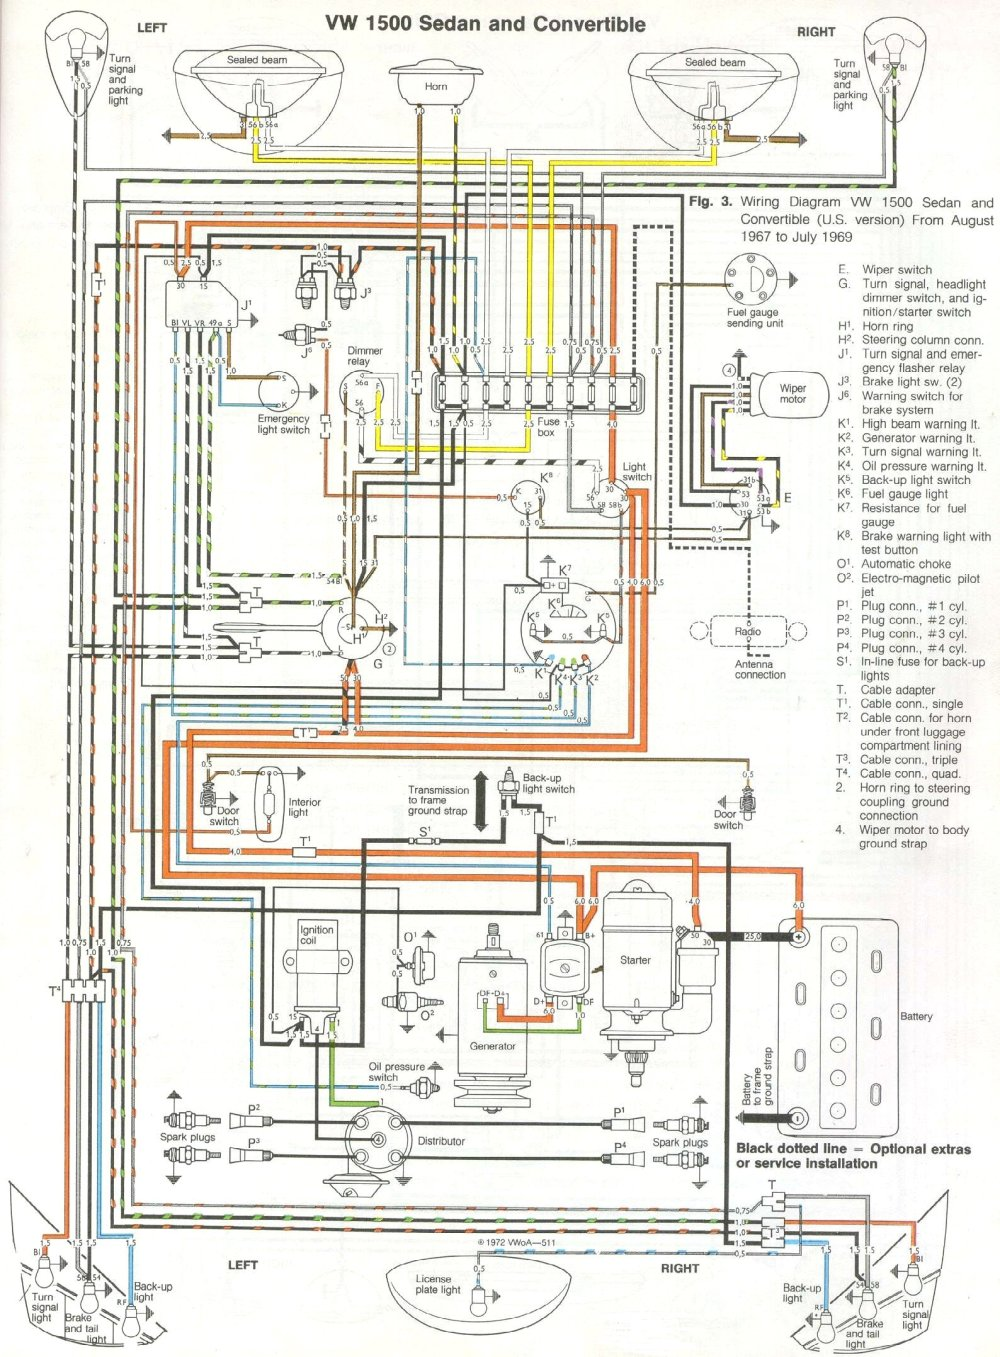 medium resolution of 1969 71 beetle wiring diagram thegoldenbug com 65 mustang t5 conversion mustang t5 transmission diagram